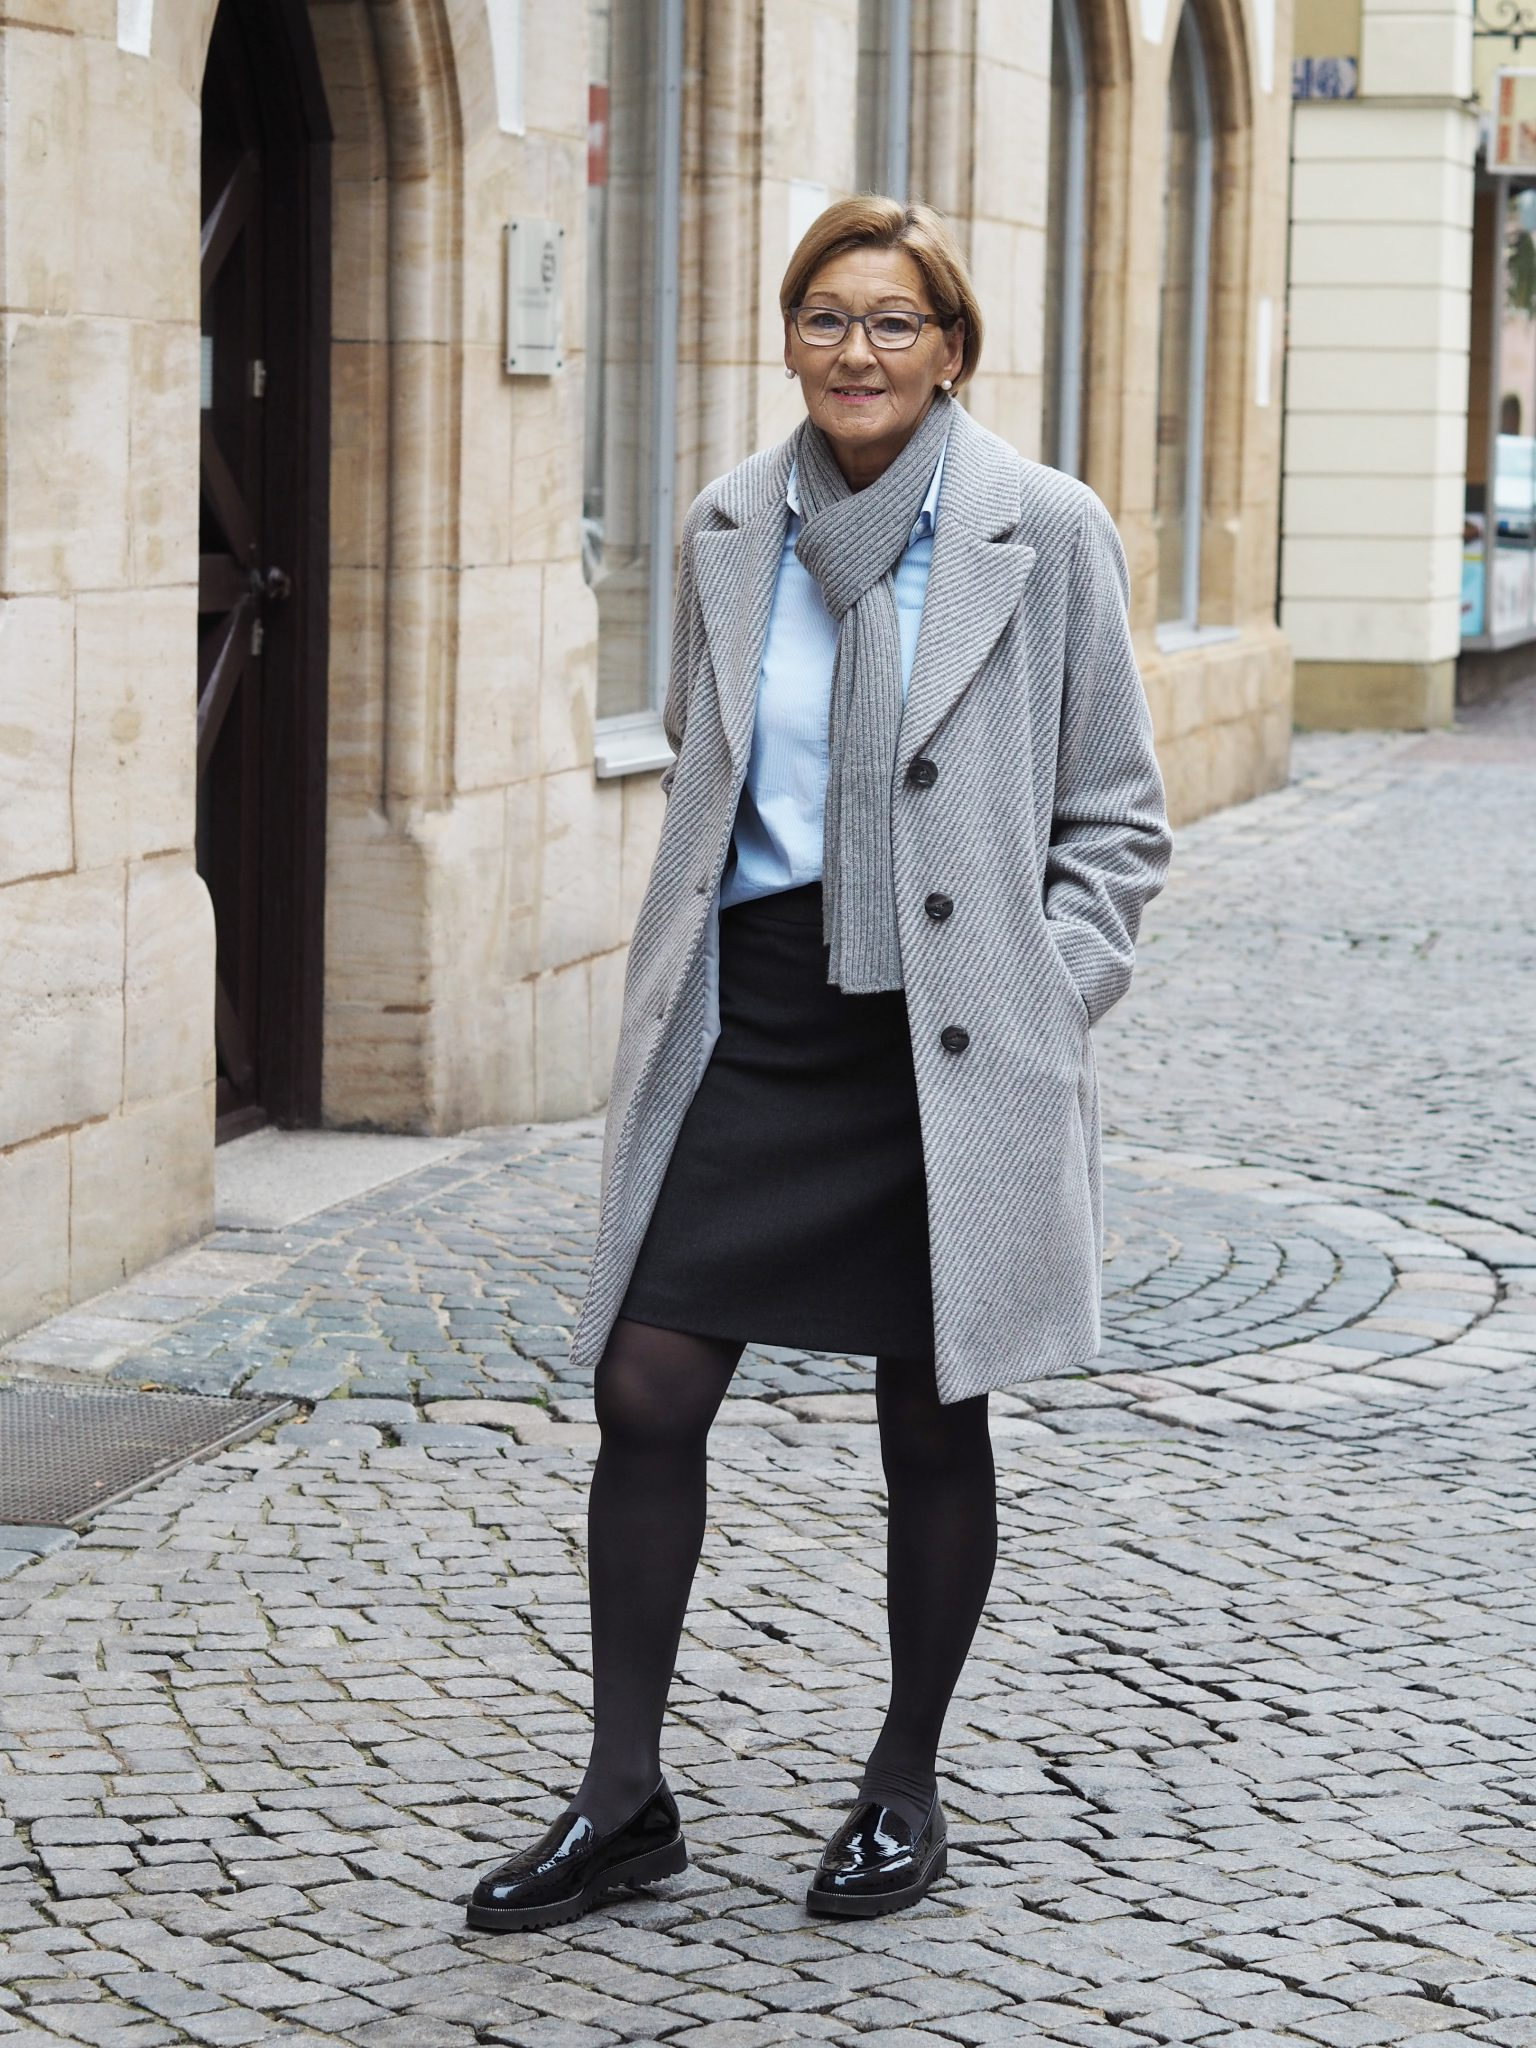 Stilheldin Irmgards Business Outfit mit flachen Lackslippern